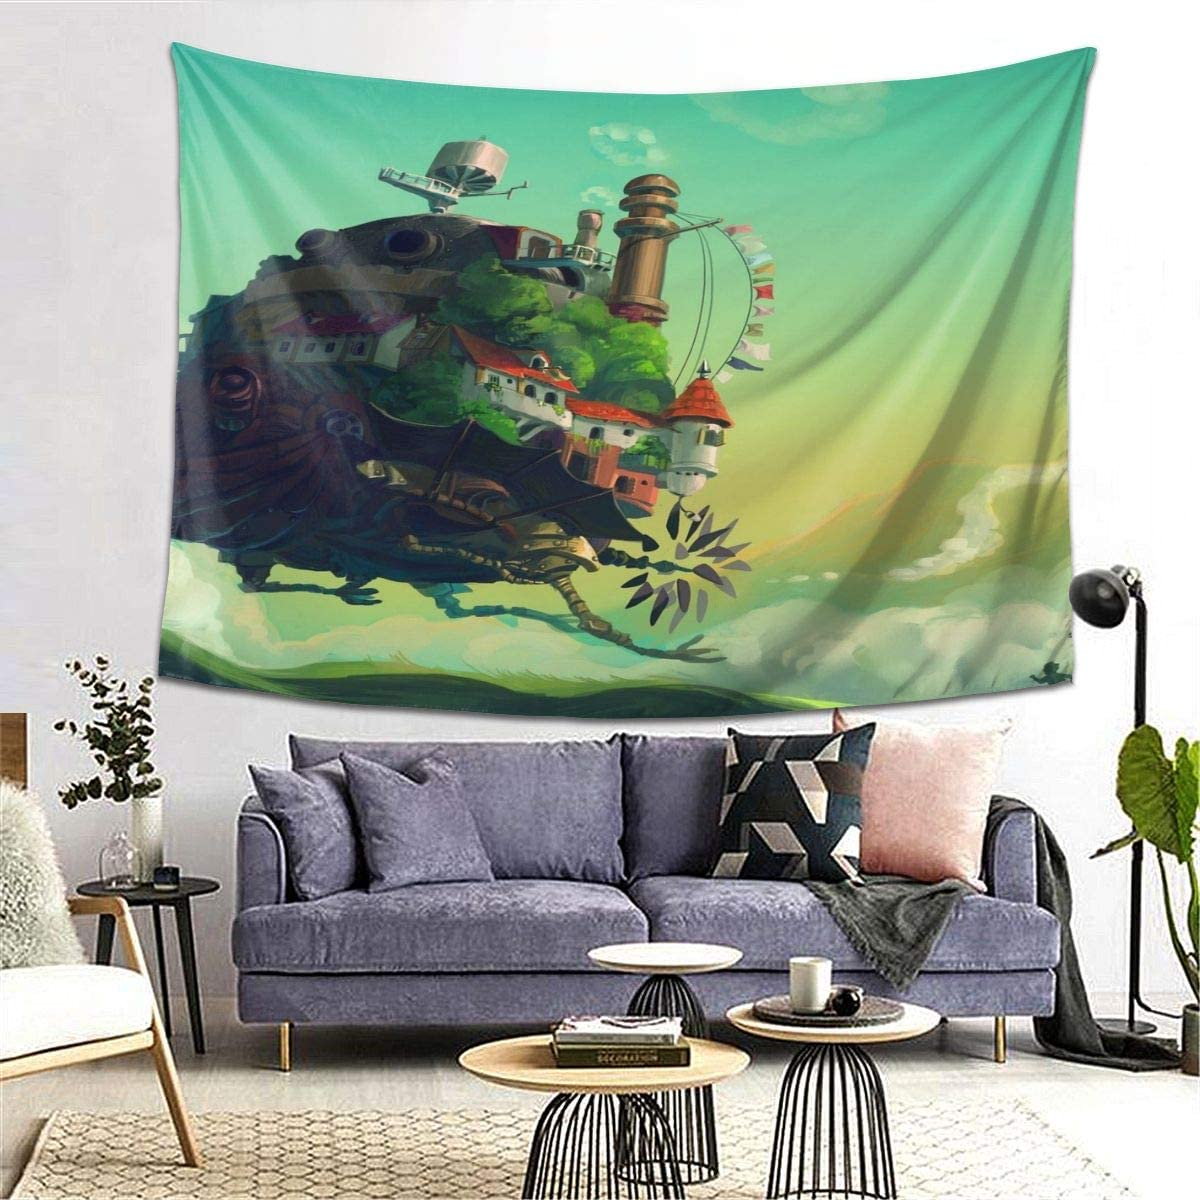 Howls Moving Castle Hayao Miyazaki Wall Tapestry Apestry Album 3D Wall Hanging Art Home Decor Wave Tapestries